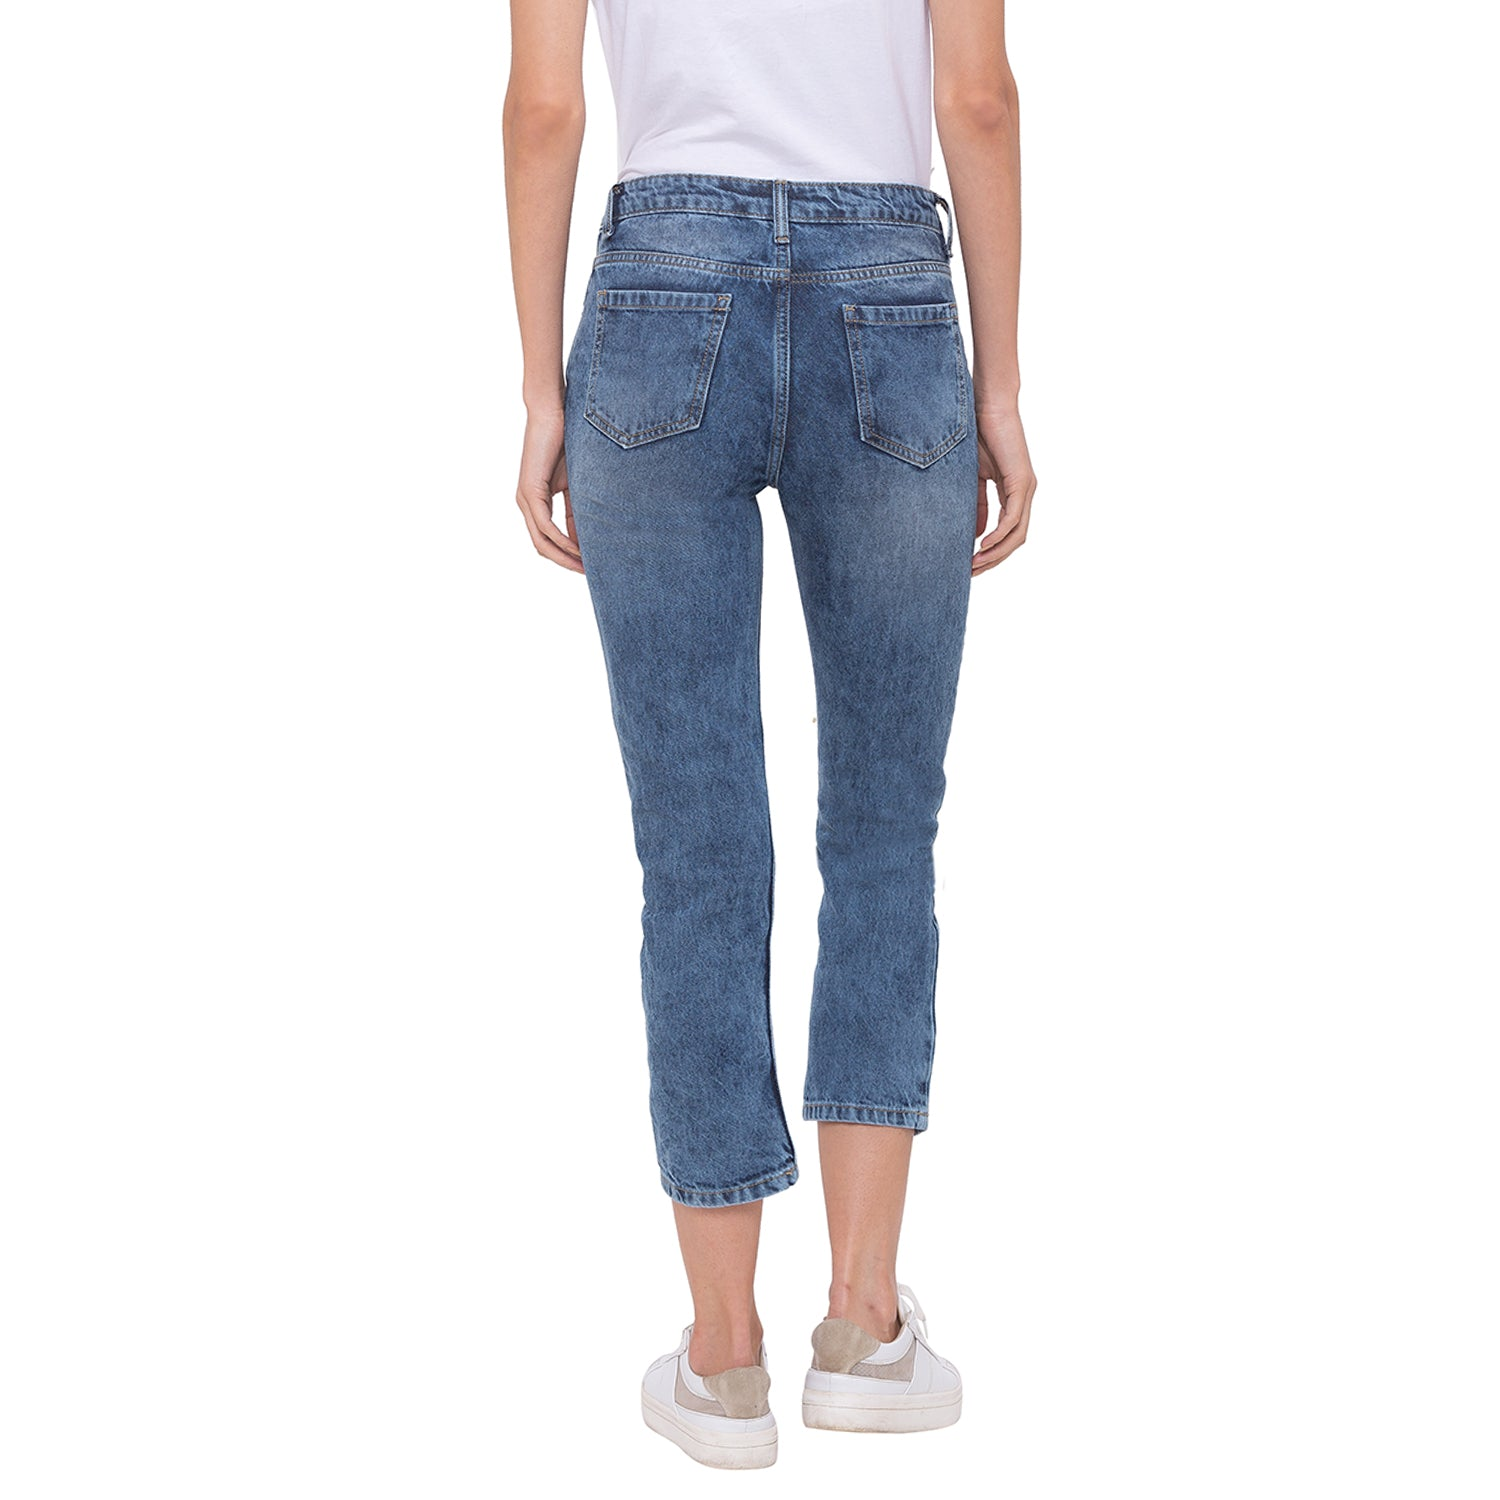 Globus Blue Washed Jeans-3